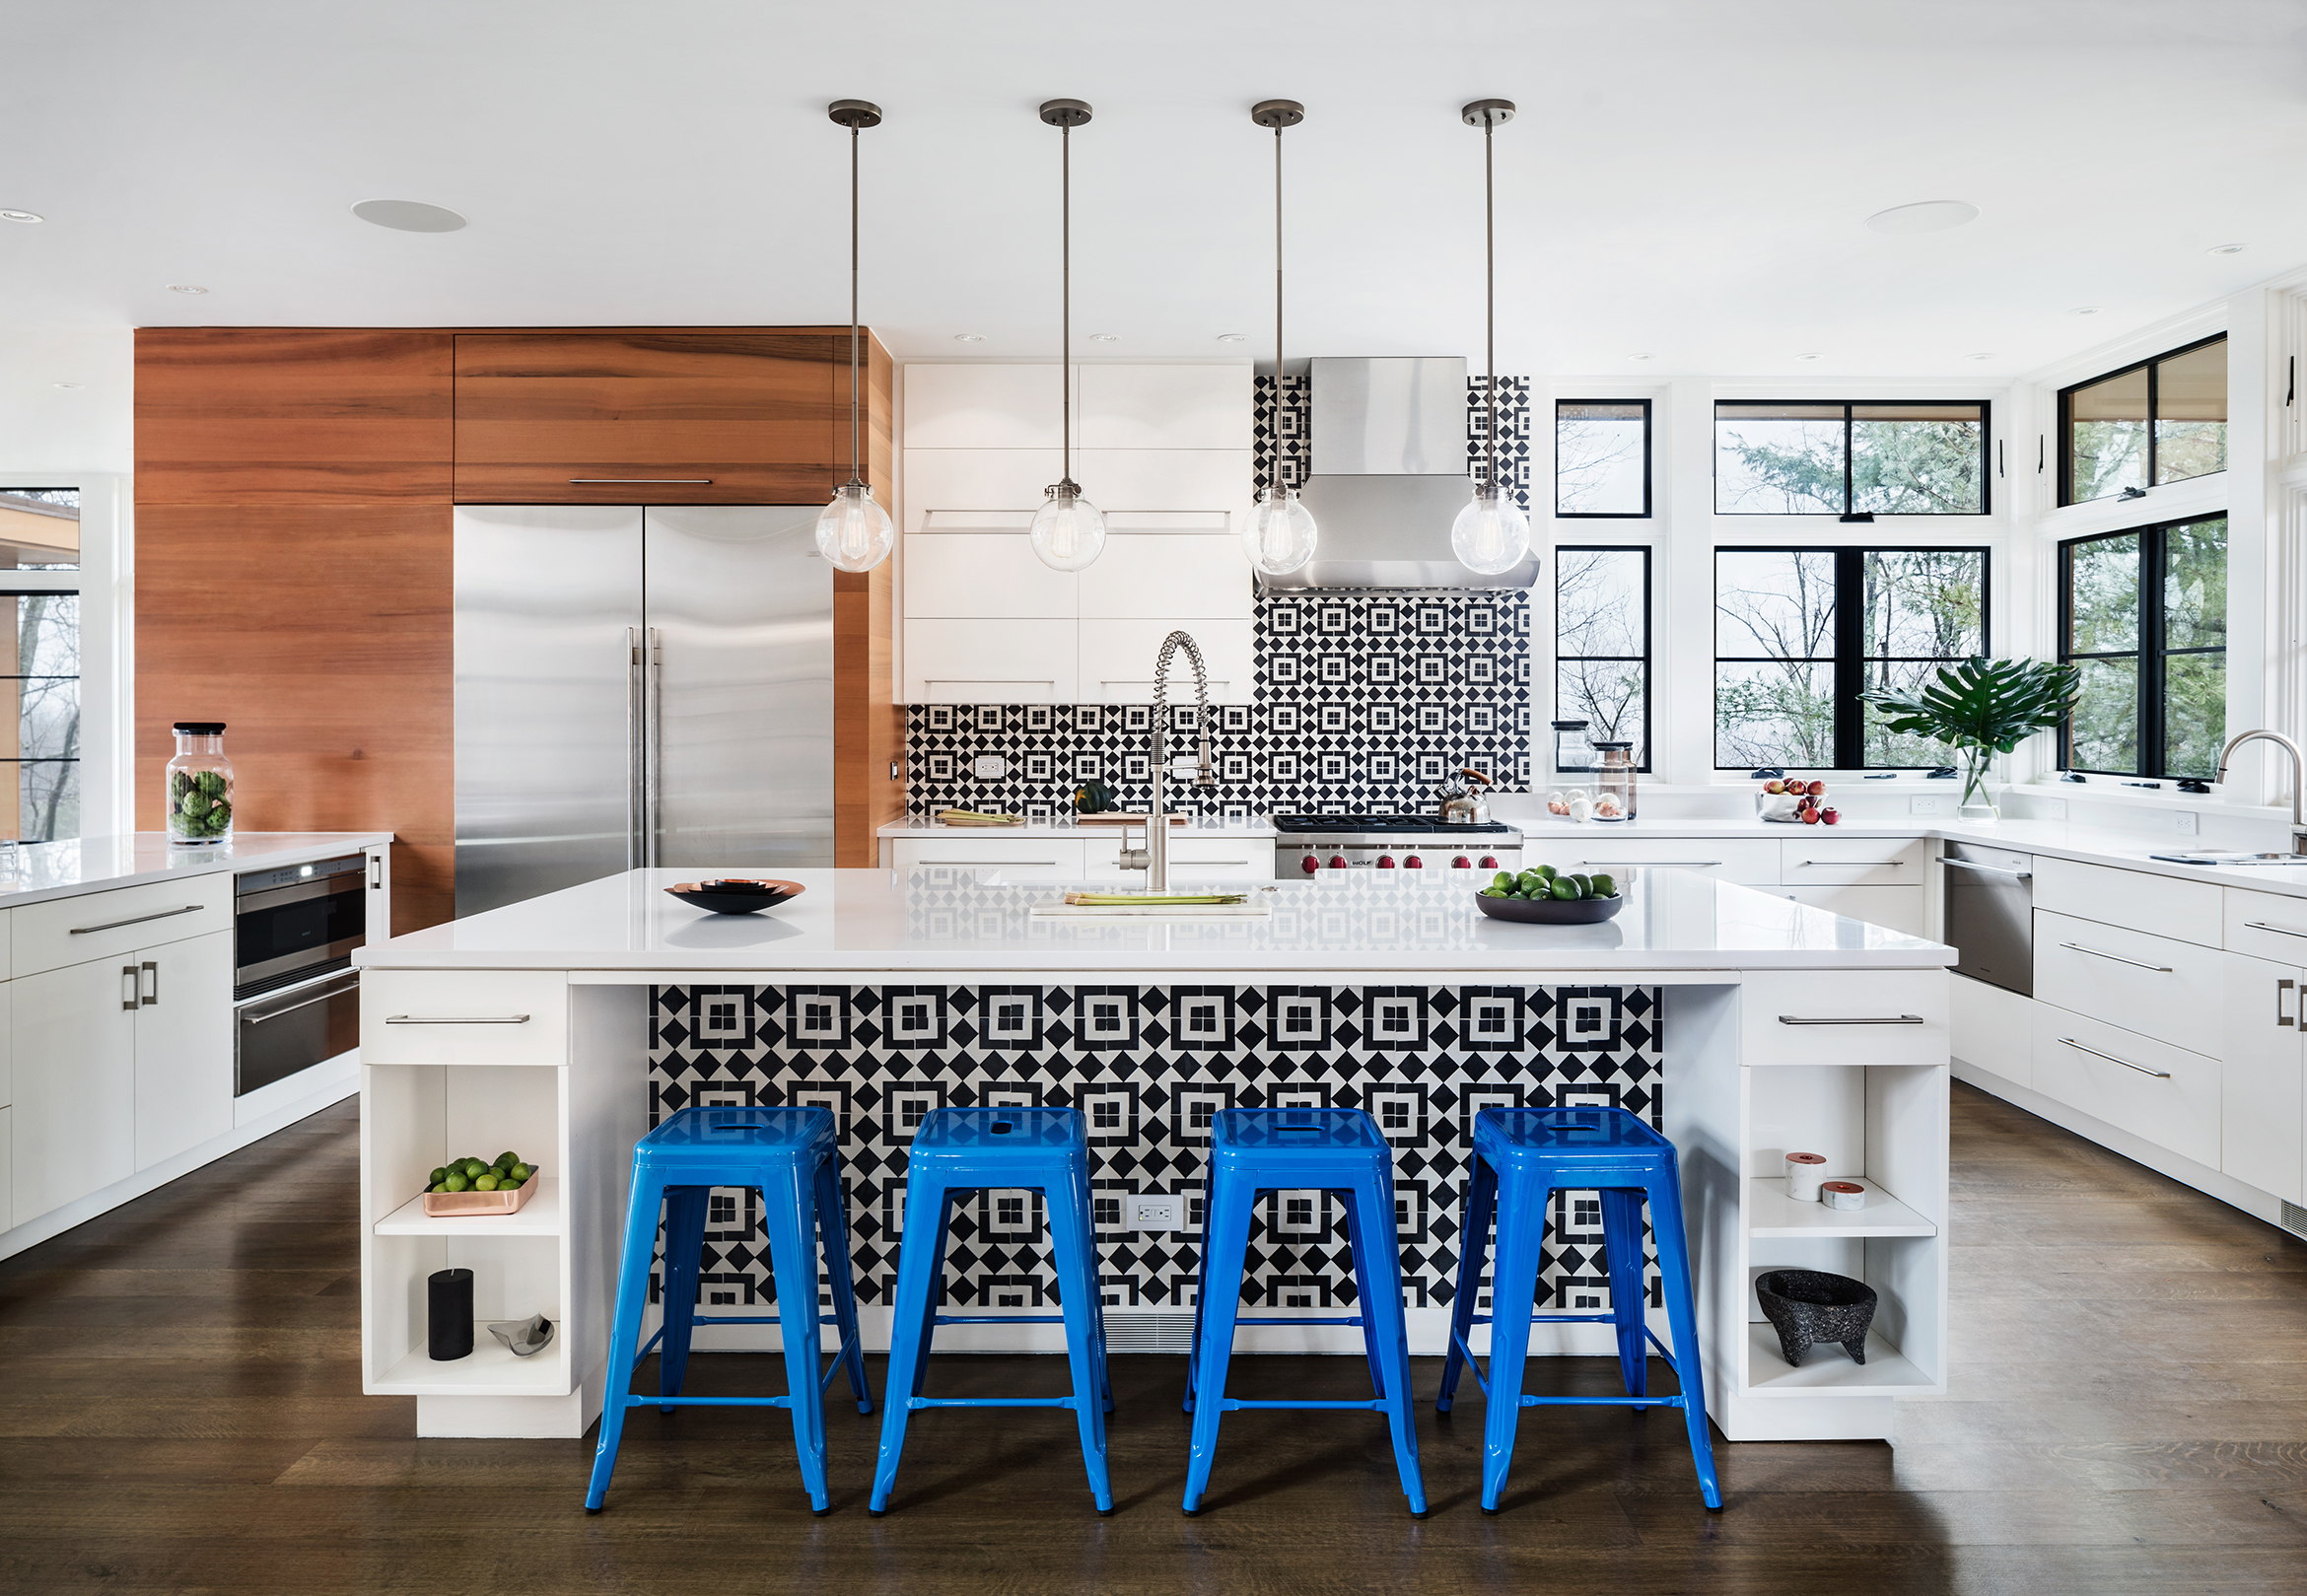 Elegant modern kitchen with black and white geometrical tiles on island bar face and backsplash